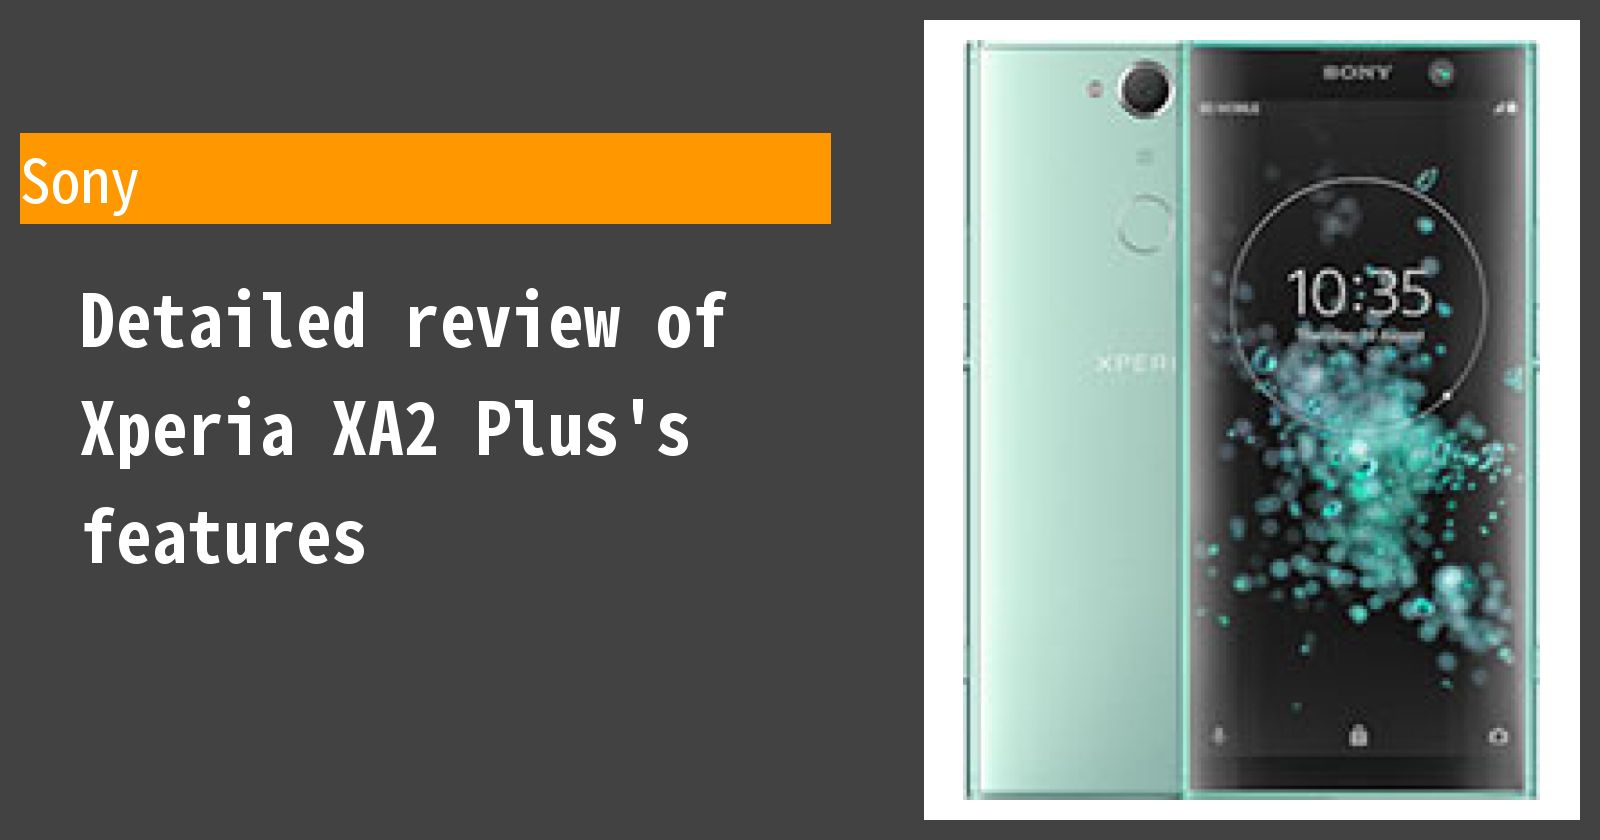 Detailed review of Xperia XA2 Plus's features